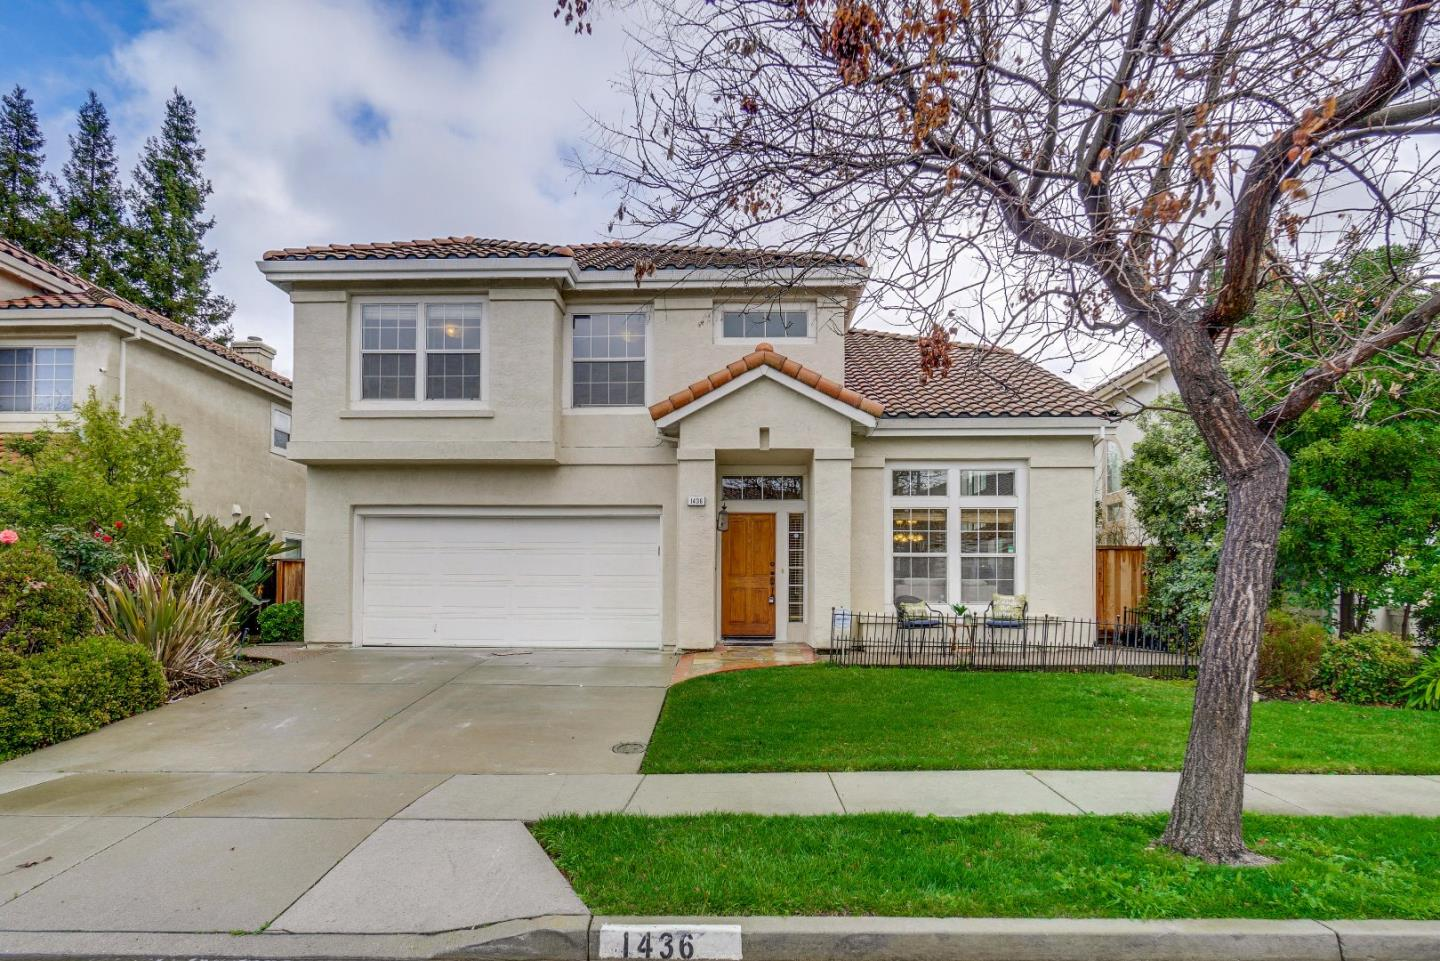 Detail Gallery Image 1 of 1 For 1436 Stanton Way, San Jose, CA, 95131 - 4 Beds | 2/1 Baths